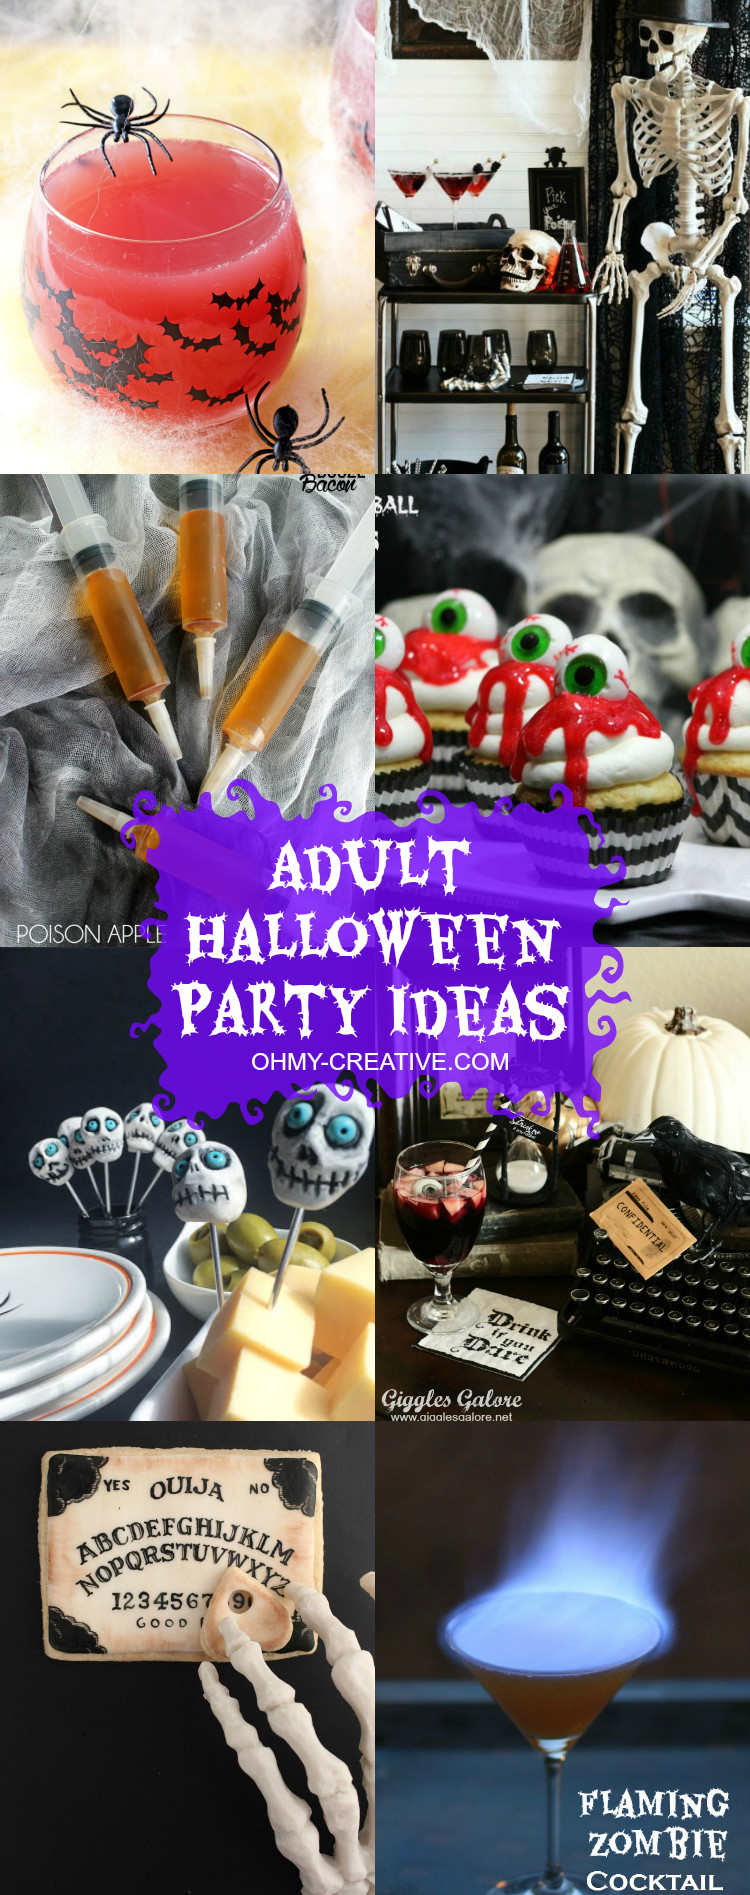 Craft Party Ideas For Adults  20 Best Craft Party Ideas for Adults Best DIY Ideas and